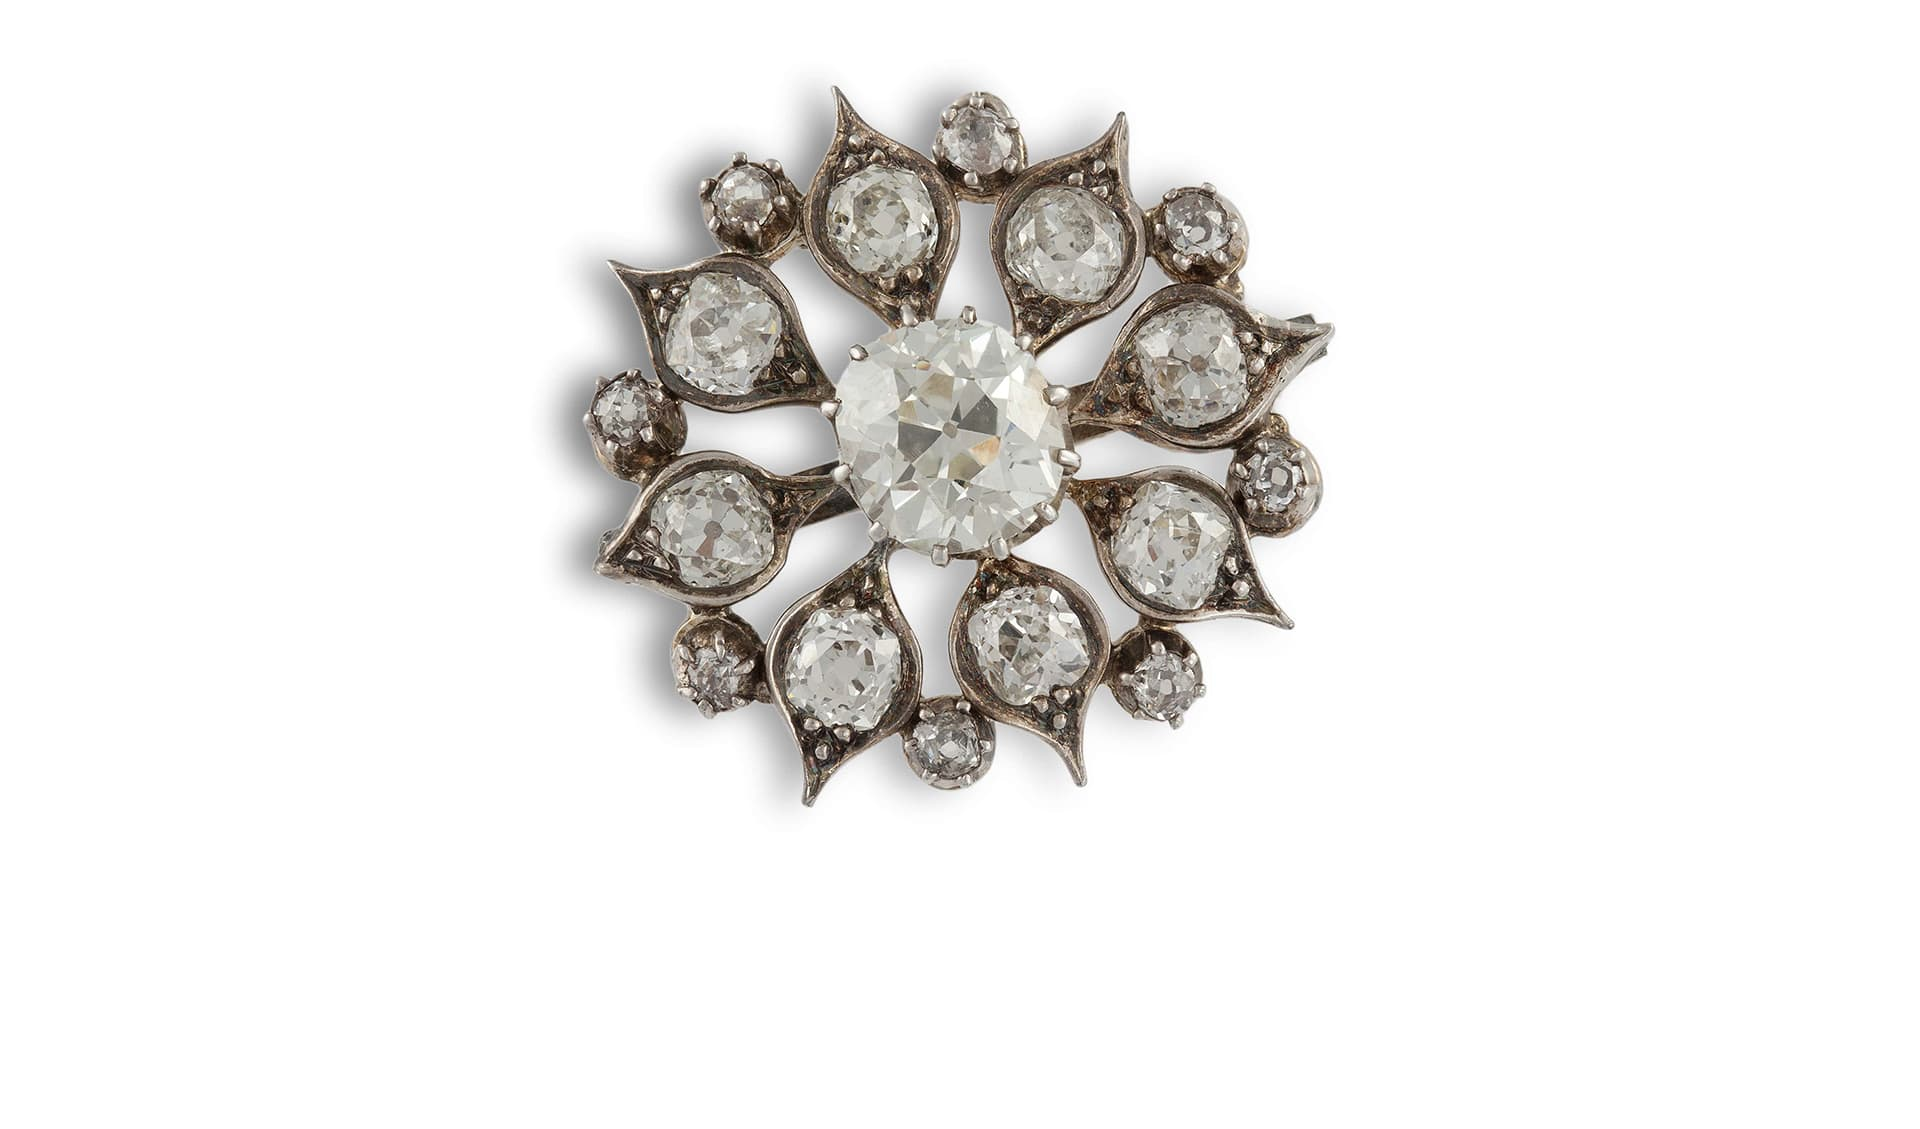 A Late 19th Century Diamond Star Brooch - Sold for €11,000